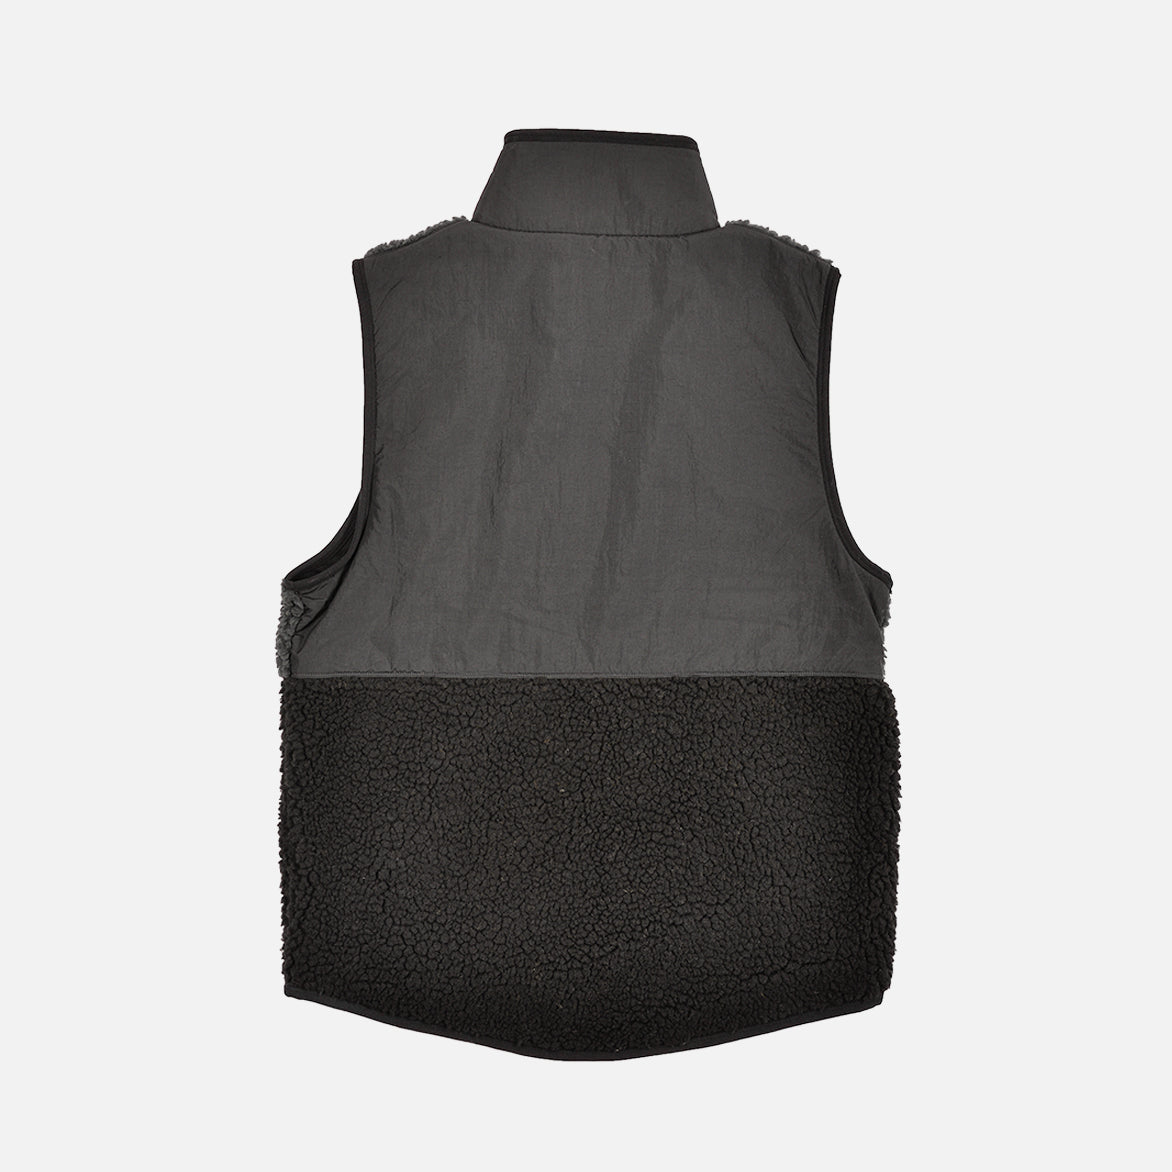 NSW SHERPA FLEECE VEST - BLACK OFF NOIR